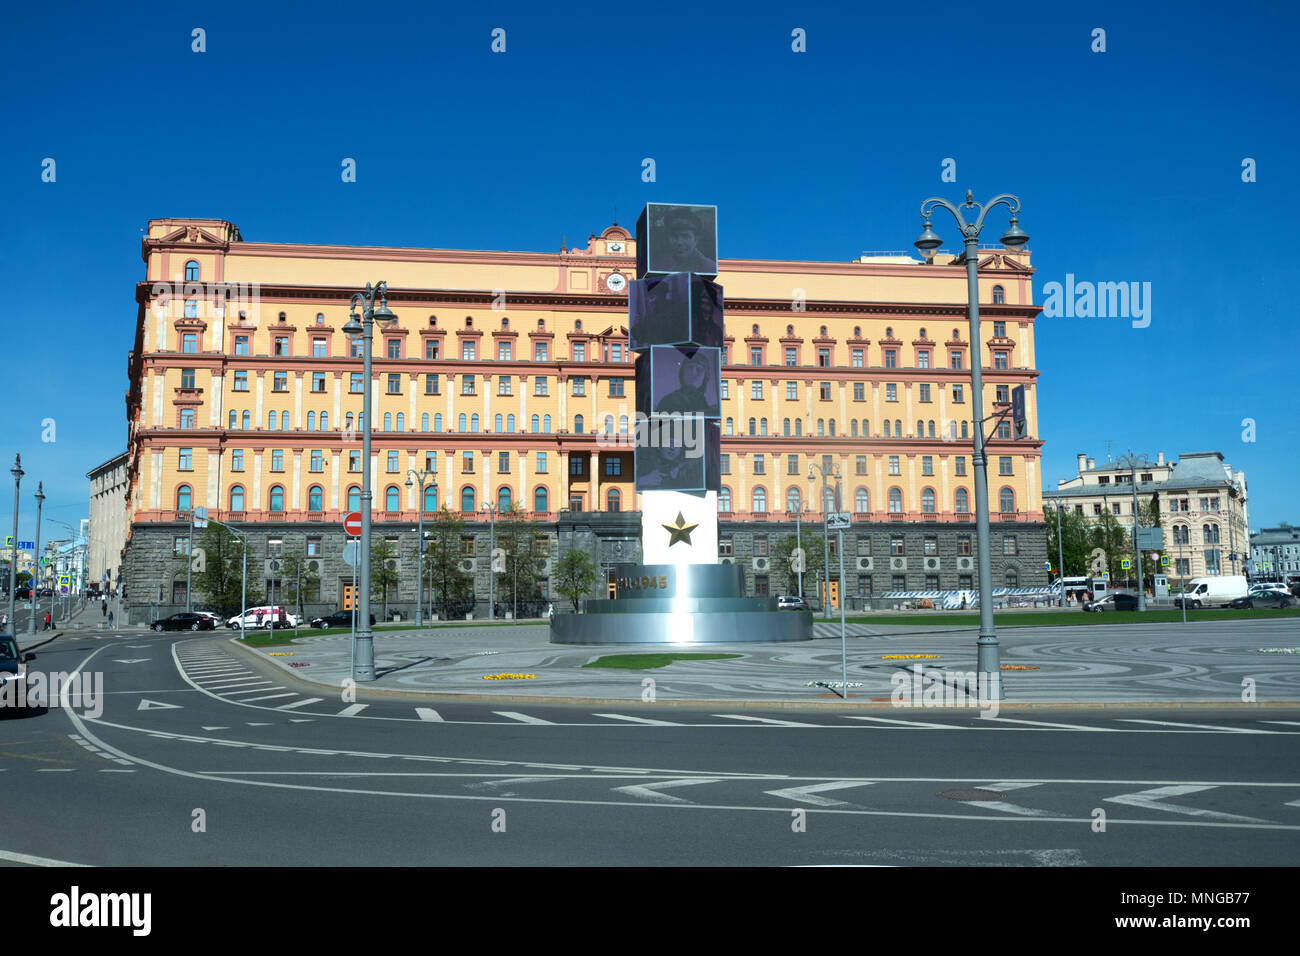 The Lubyanka Building (former headquarters of the KGB and affiliated prison) today secret service FSB in Moscow, Russia - Stock Image